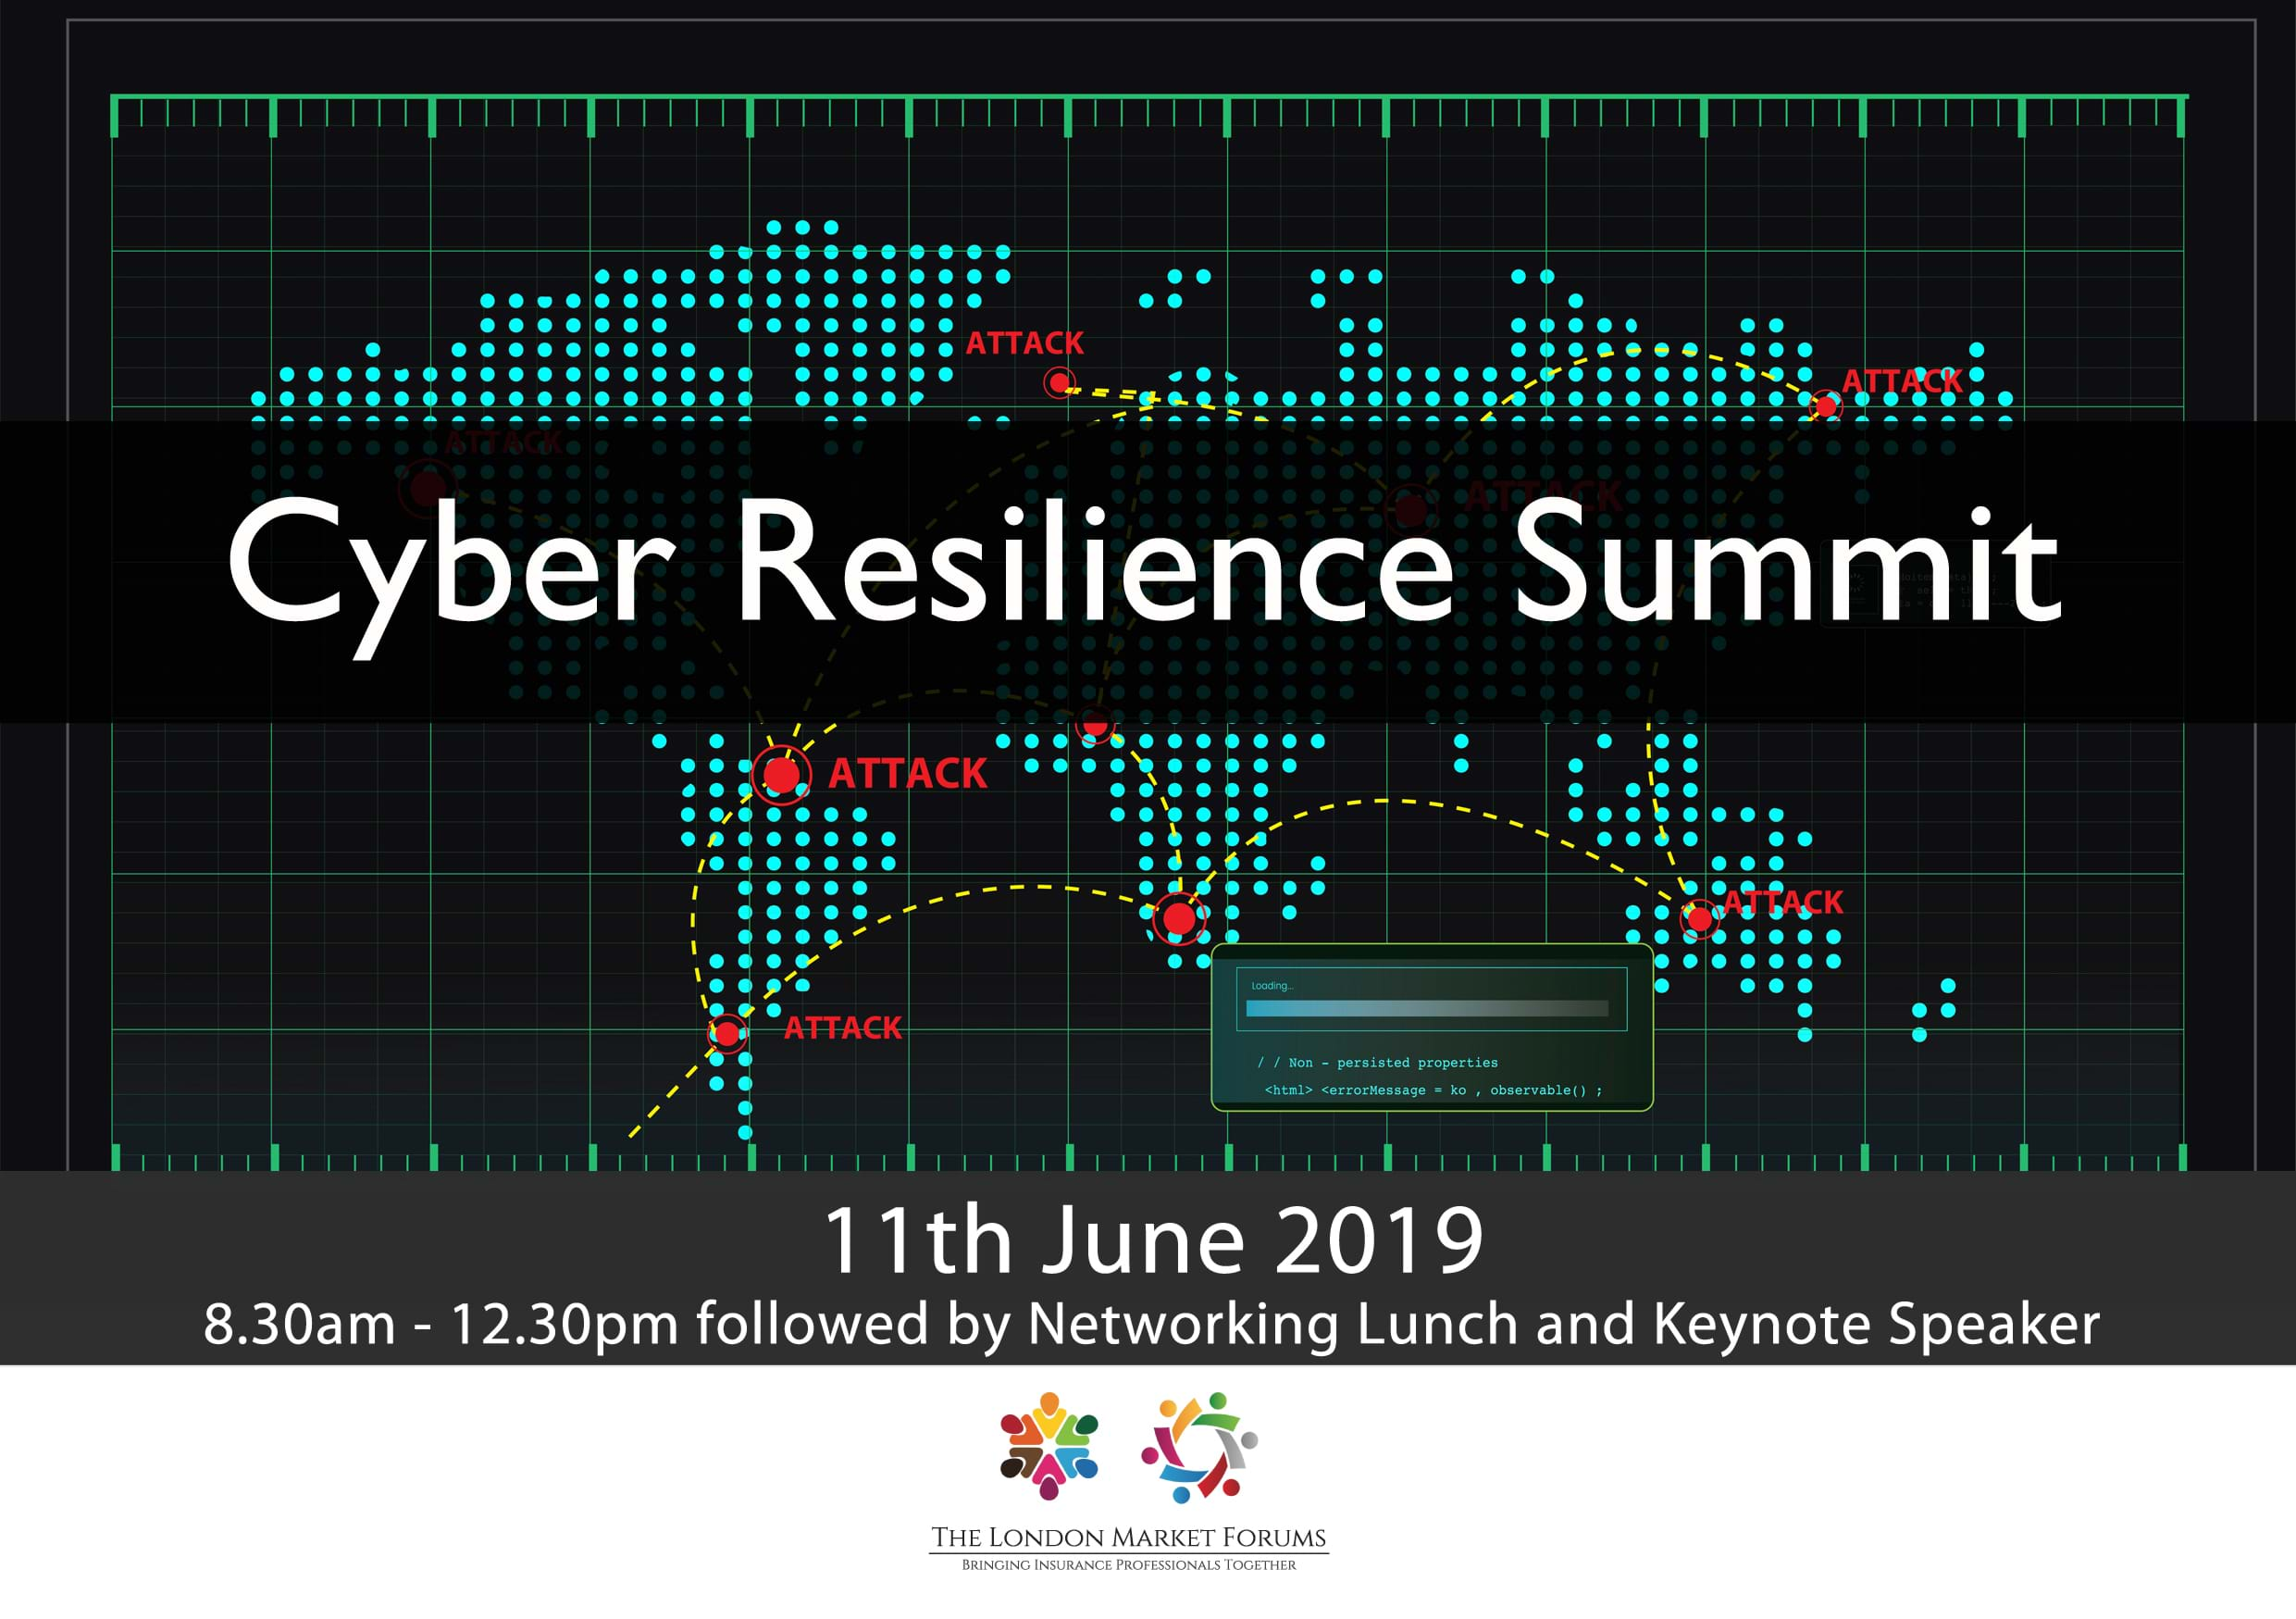 Cyber Resillience Summit - 11th June 2019